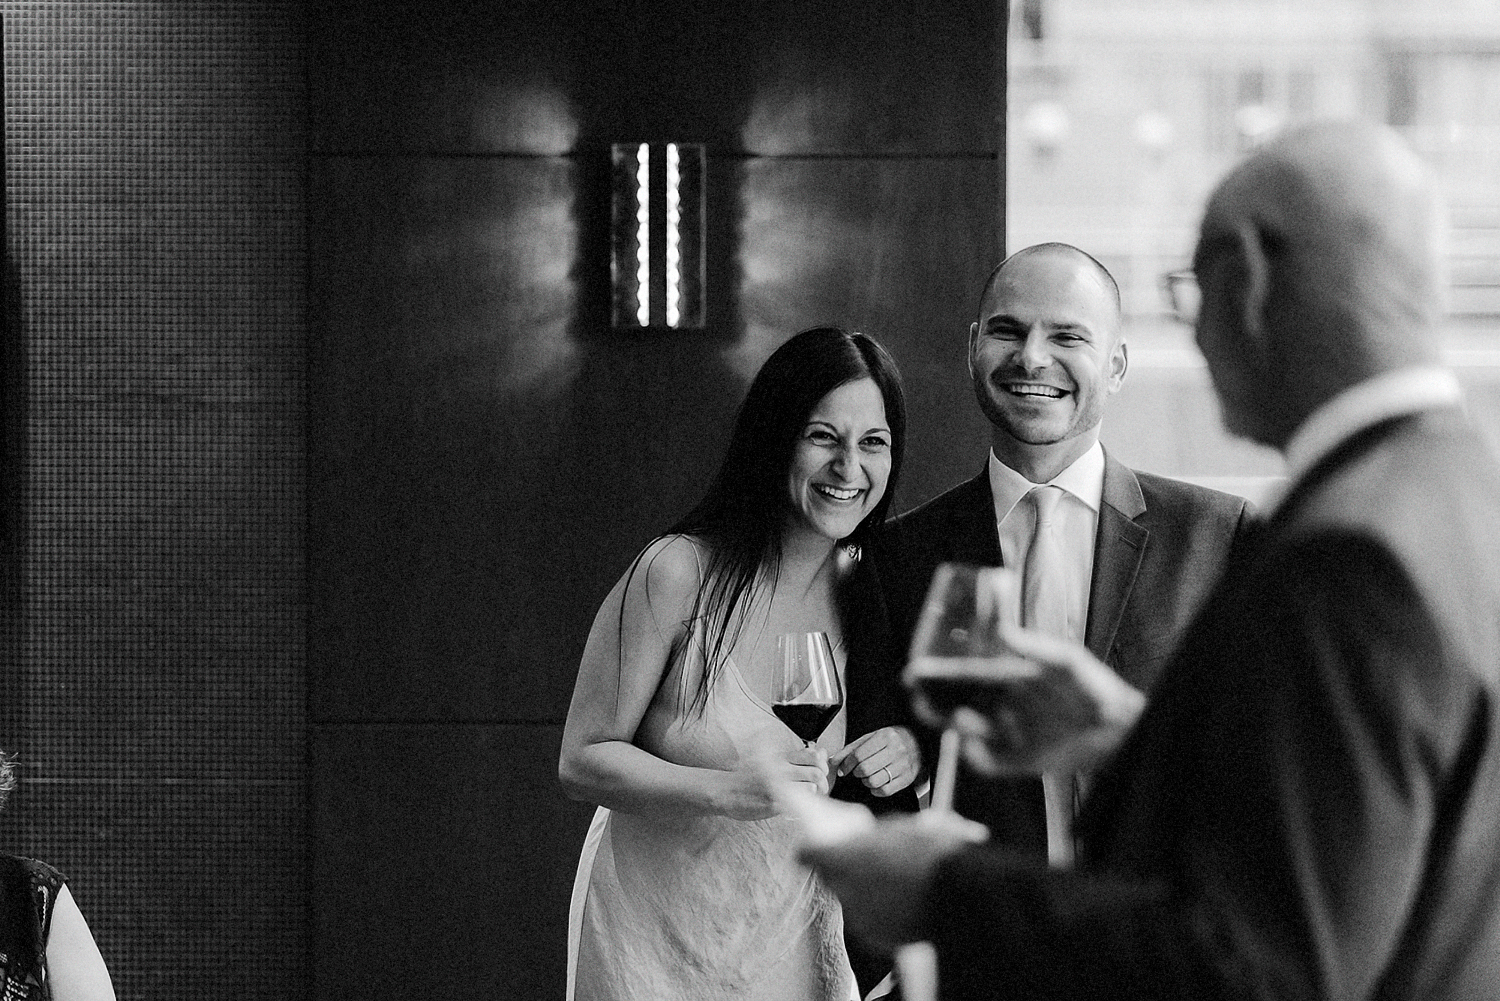 53-One-King-West-INtimate-Wedding-Ceremony-BW-Film-ANalog-Best-Wedding-Photographers-Toronto-First-Kiss-Grain-Ring-Exchange-3b-Photo-wedding-toronto.jpg